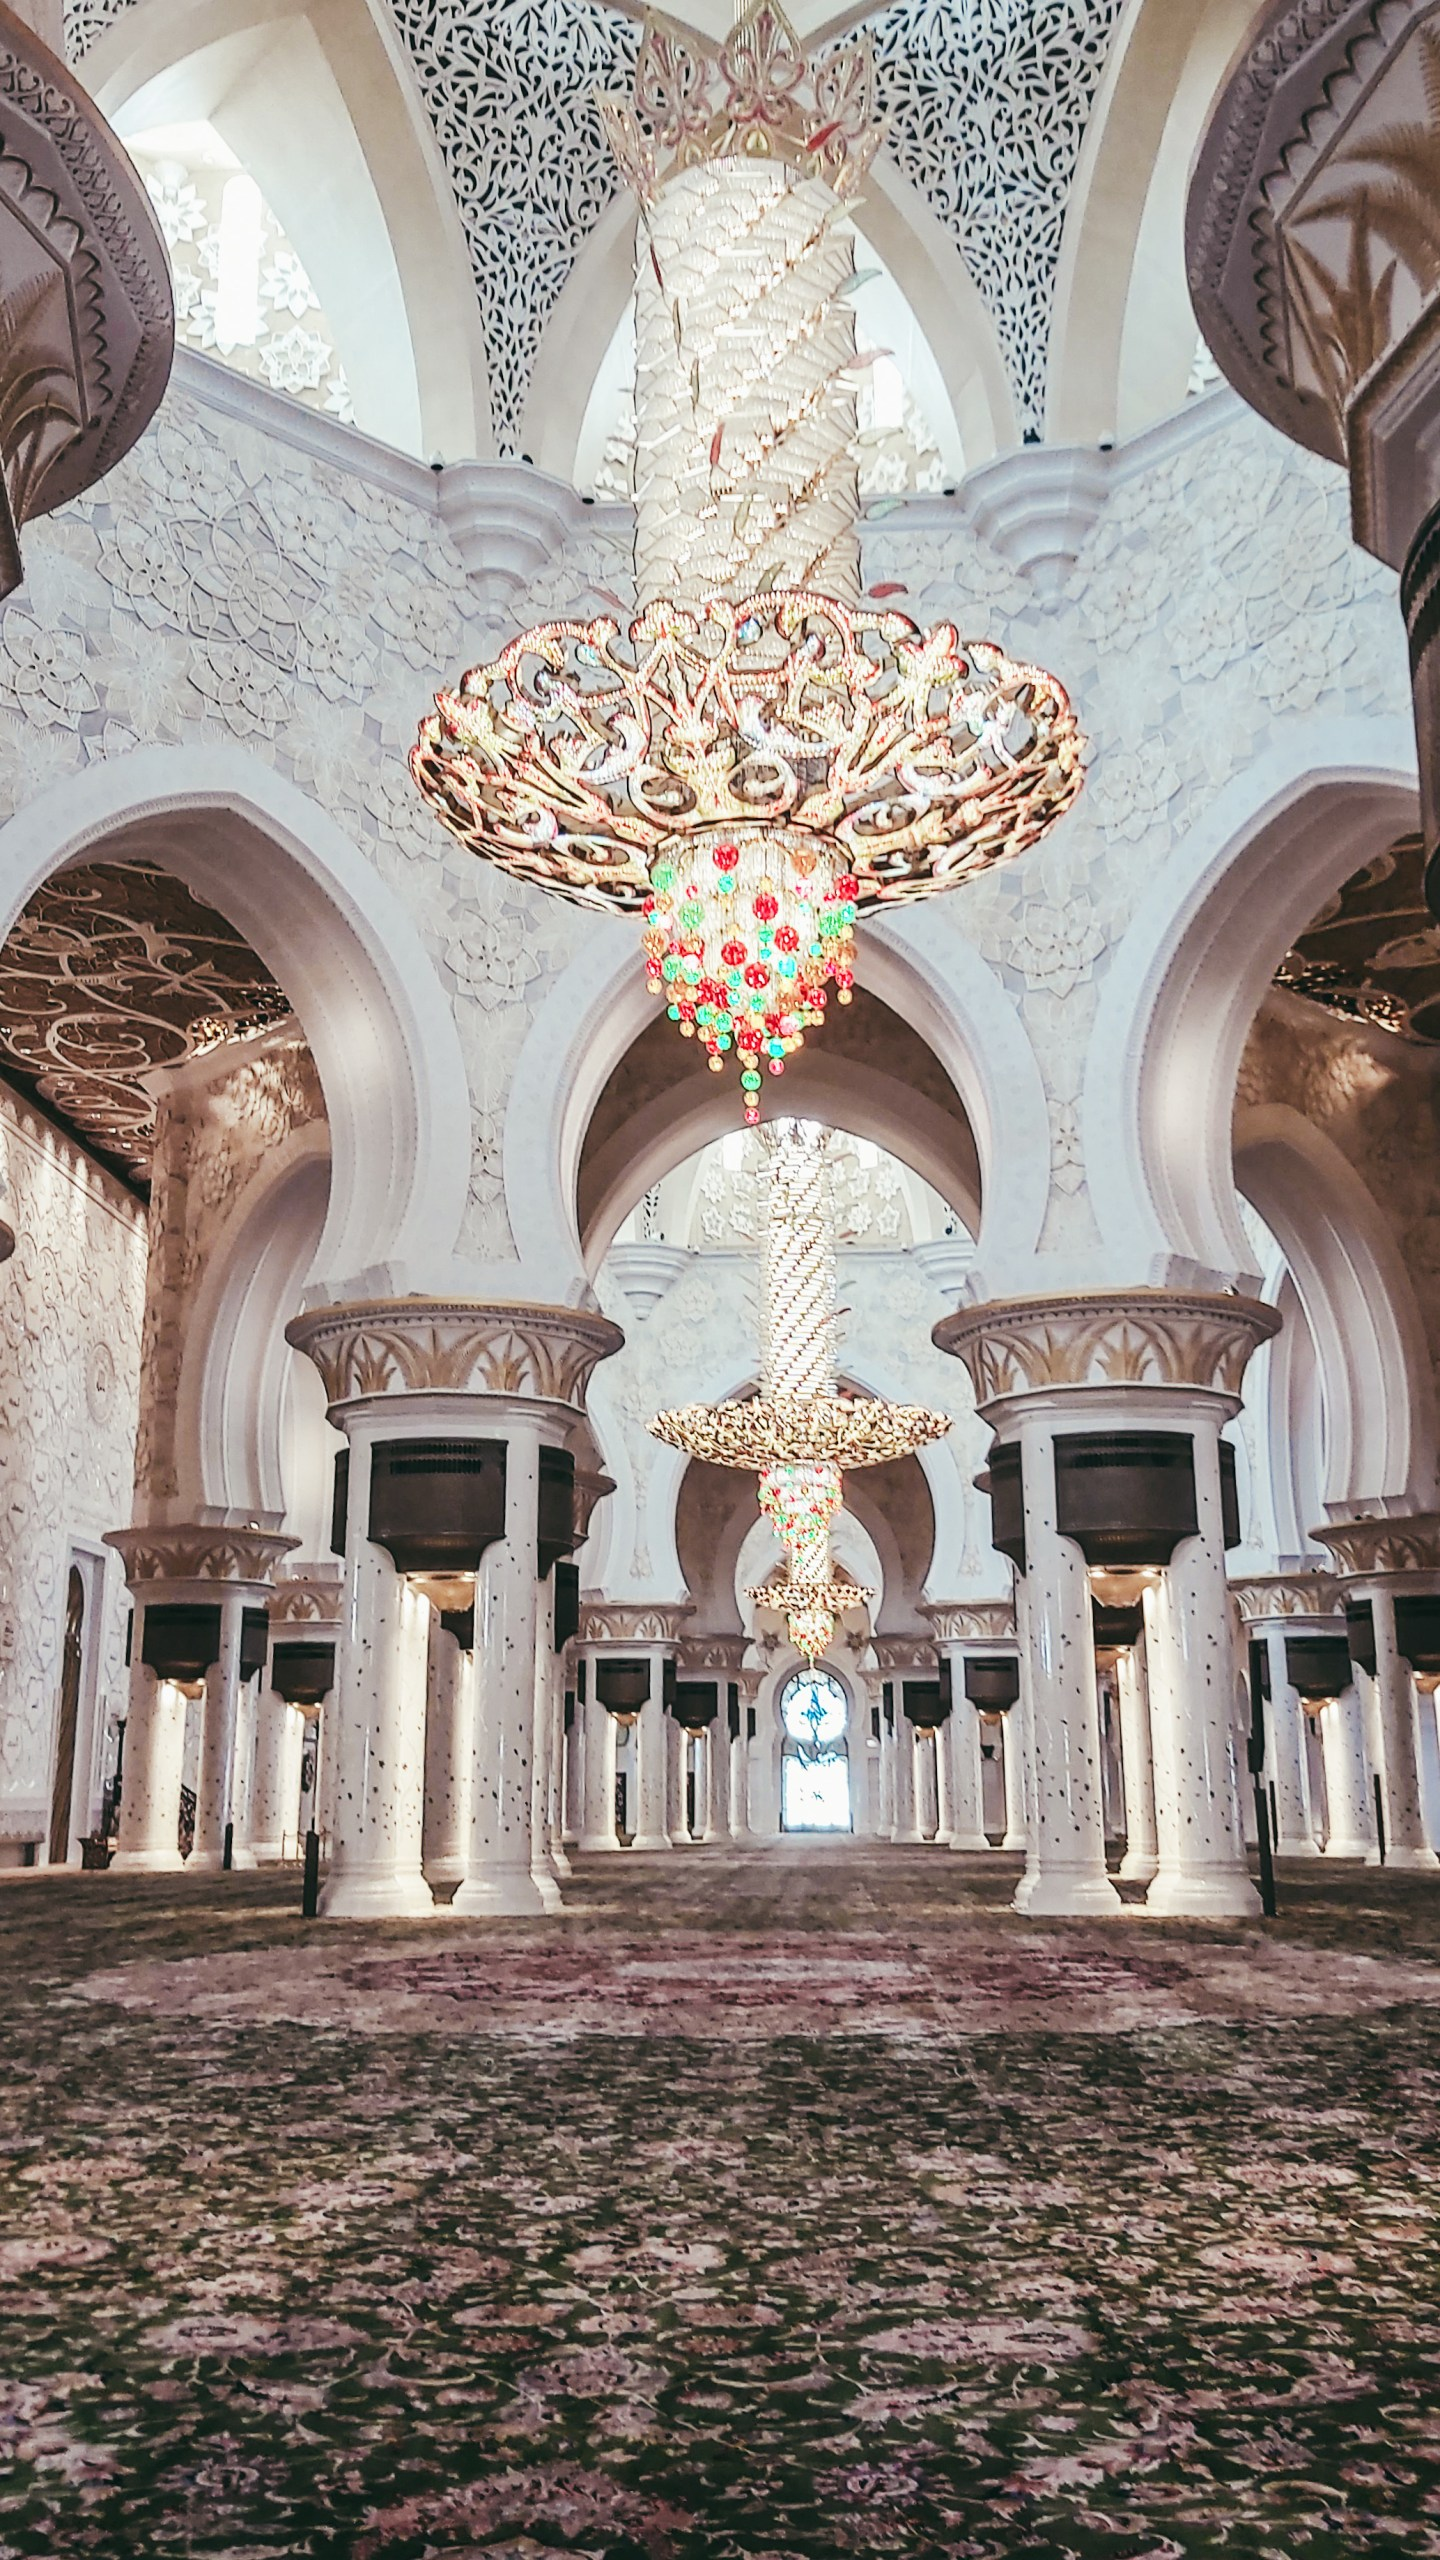 The Prayer Room of Sheikh Zayed Grand Mosque.